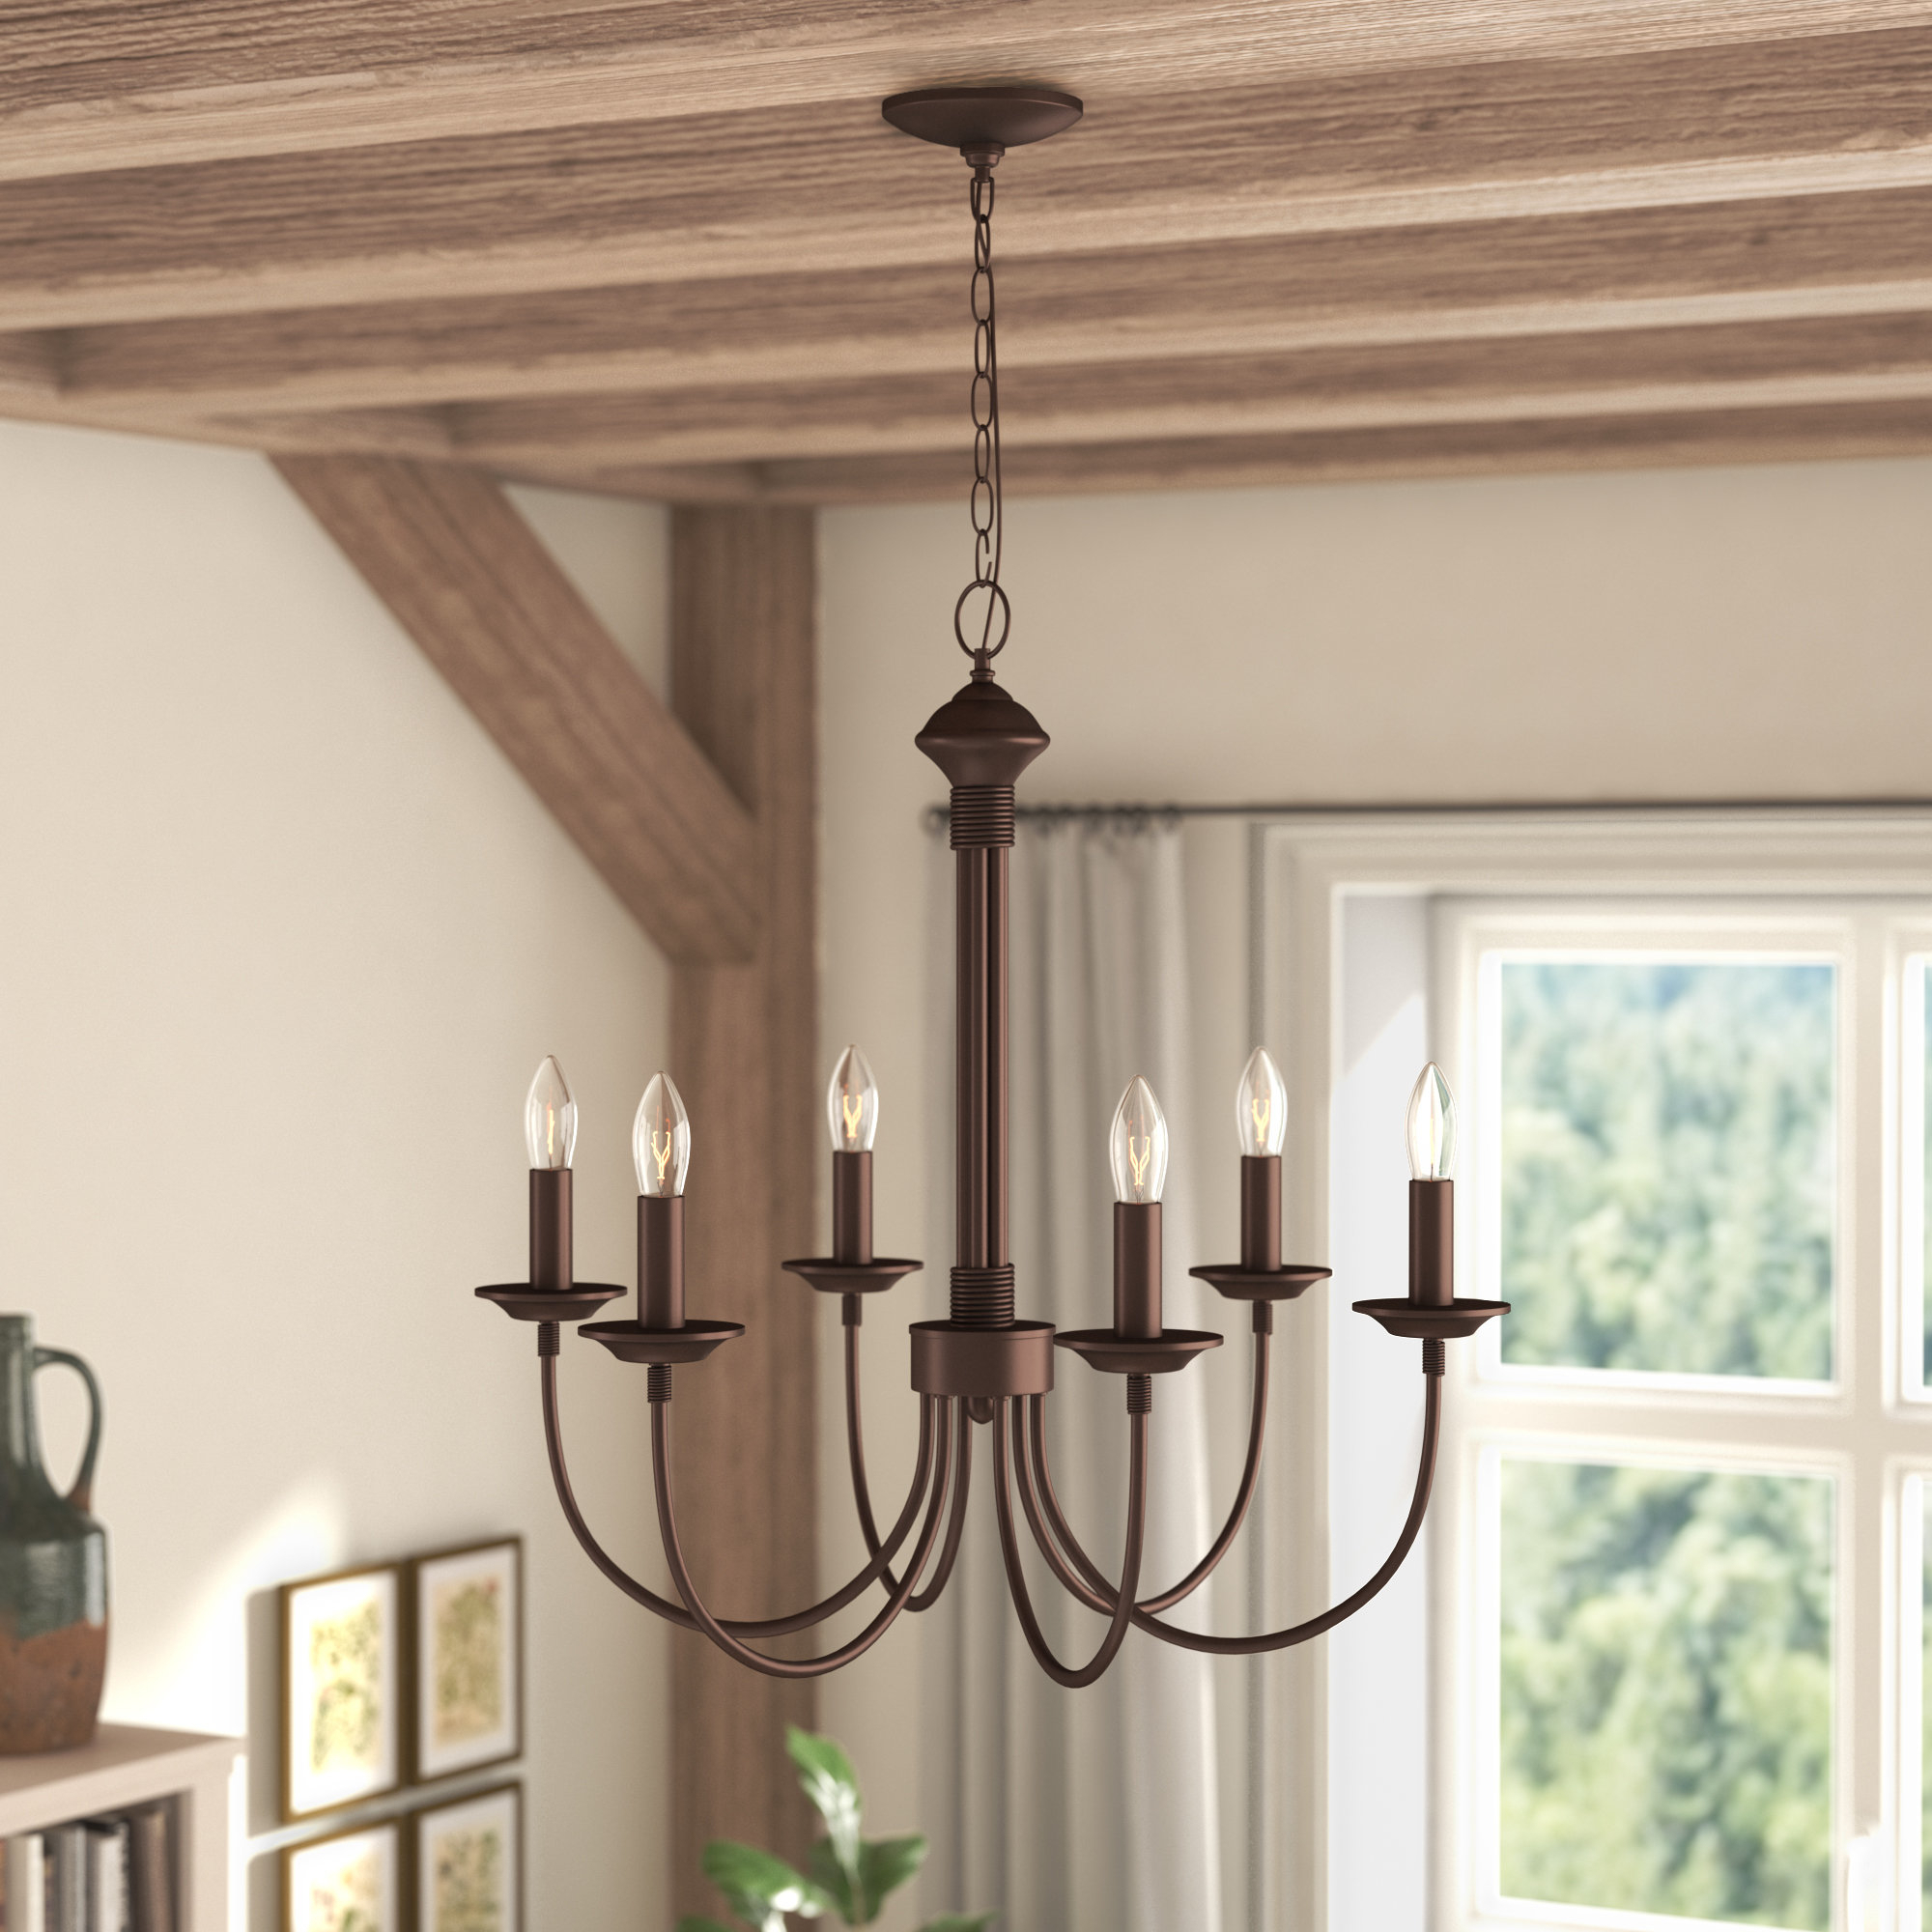 2019 Laurel Foundry Modern Farmhouse Shaylee 6 Light Candle Style Chandelier For Shaylee 8 Light Candle Style Chandeliers (View 18 of 25)